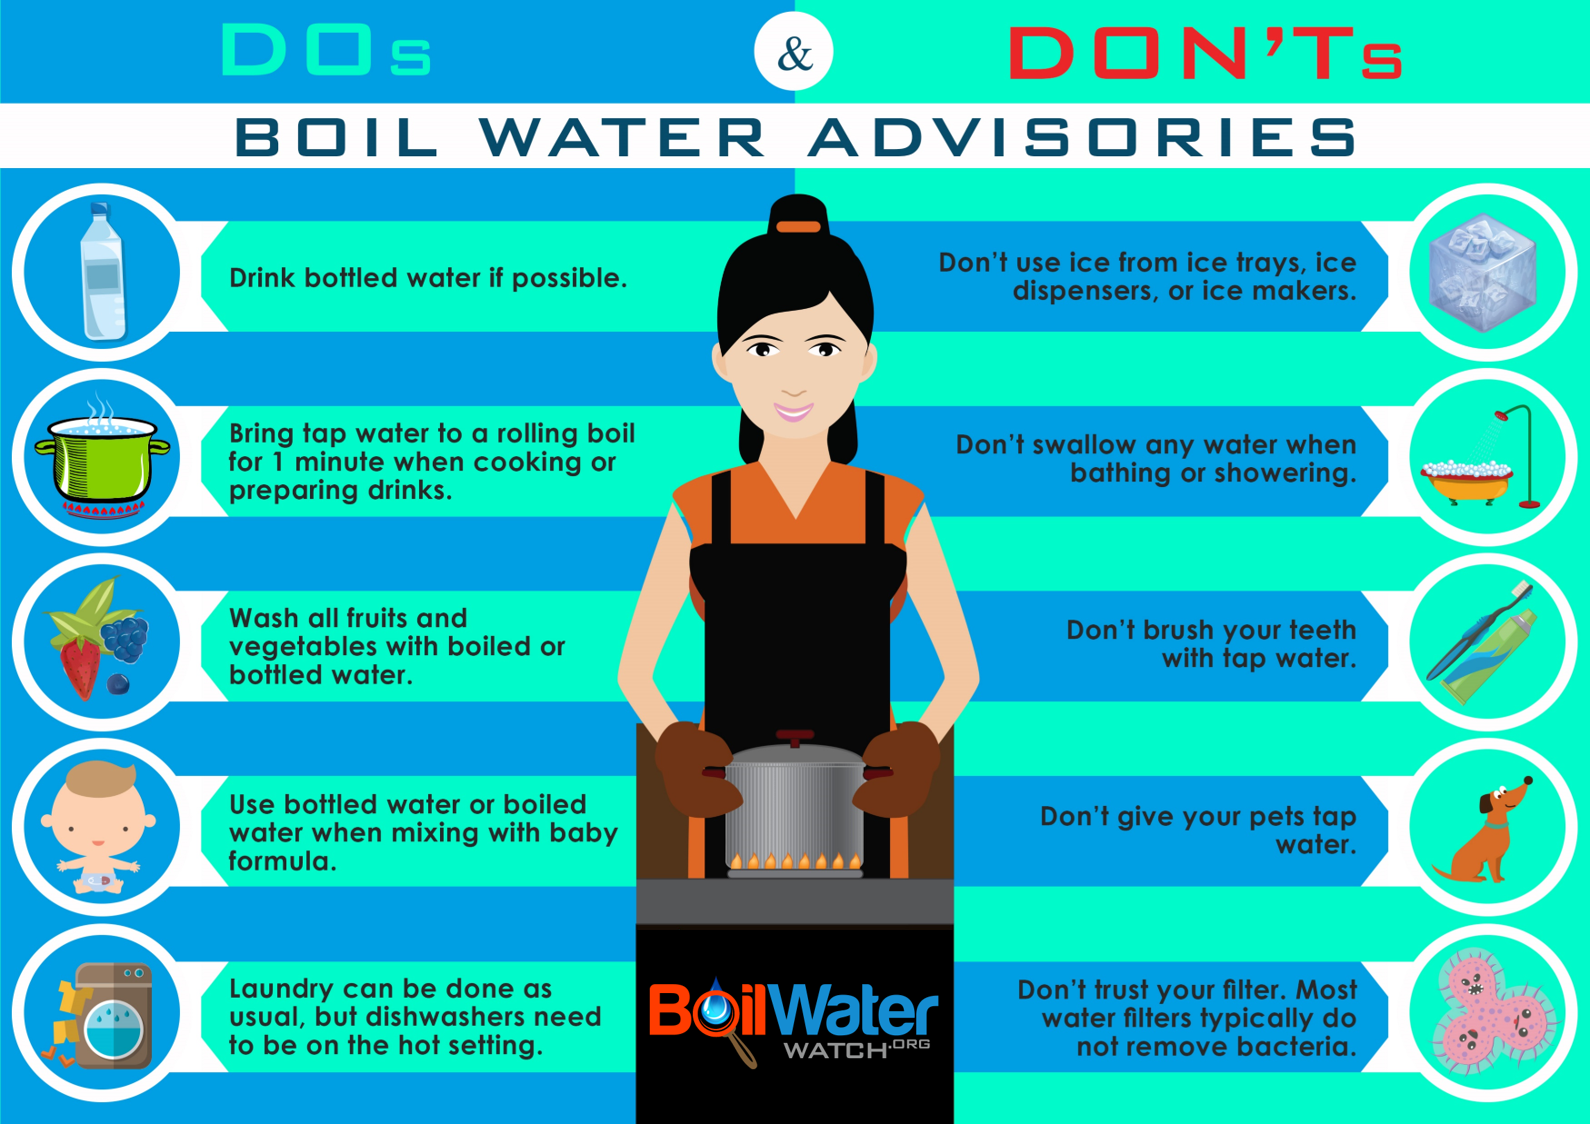 Boil Water Advisory Do's and Don'ts Infographic